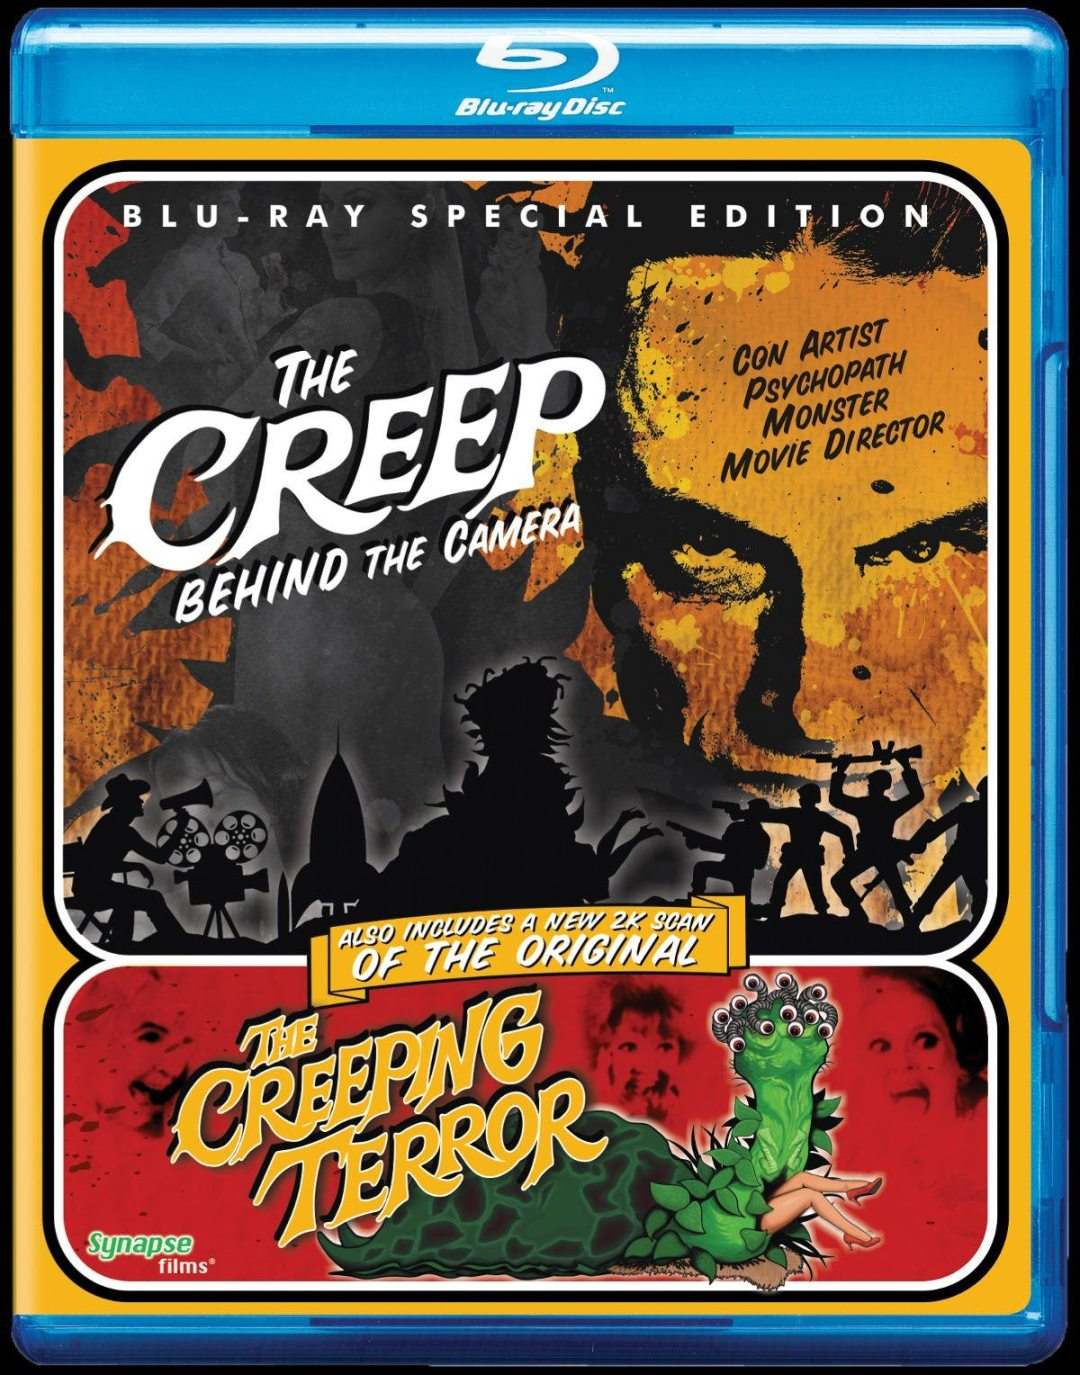 'The Creep Behind The Camera' Tells The Story Of How 'The Creeping Terror' Was Made!